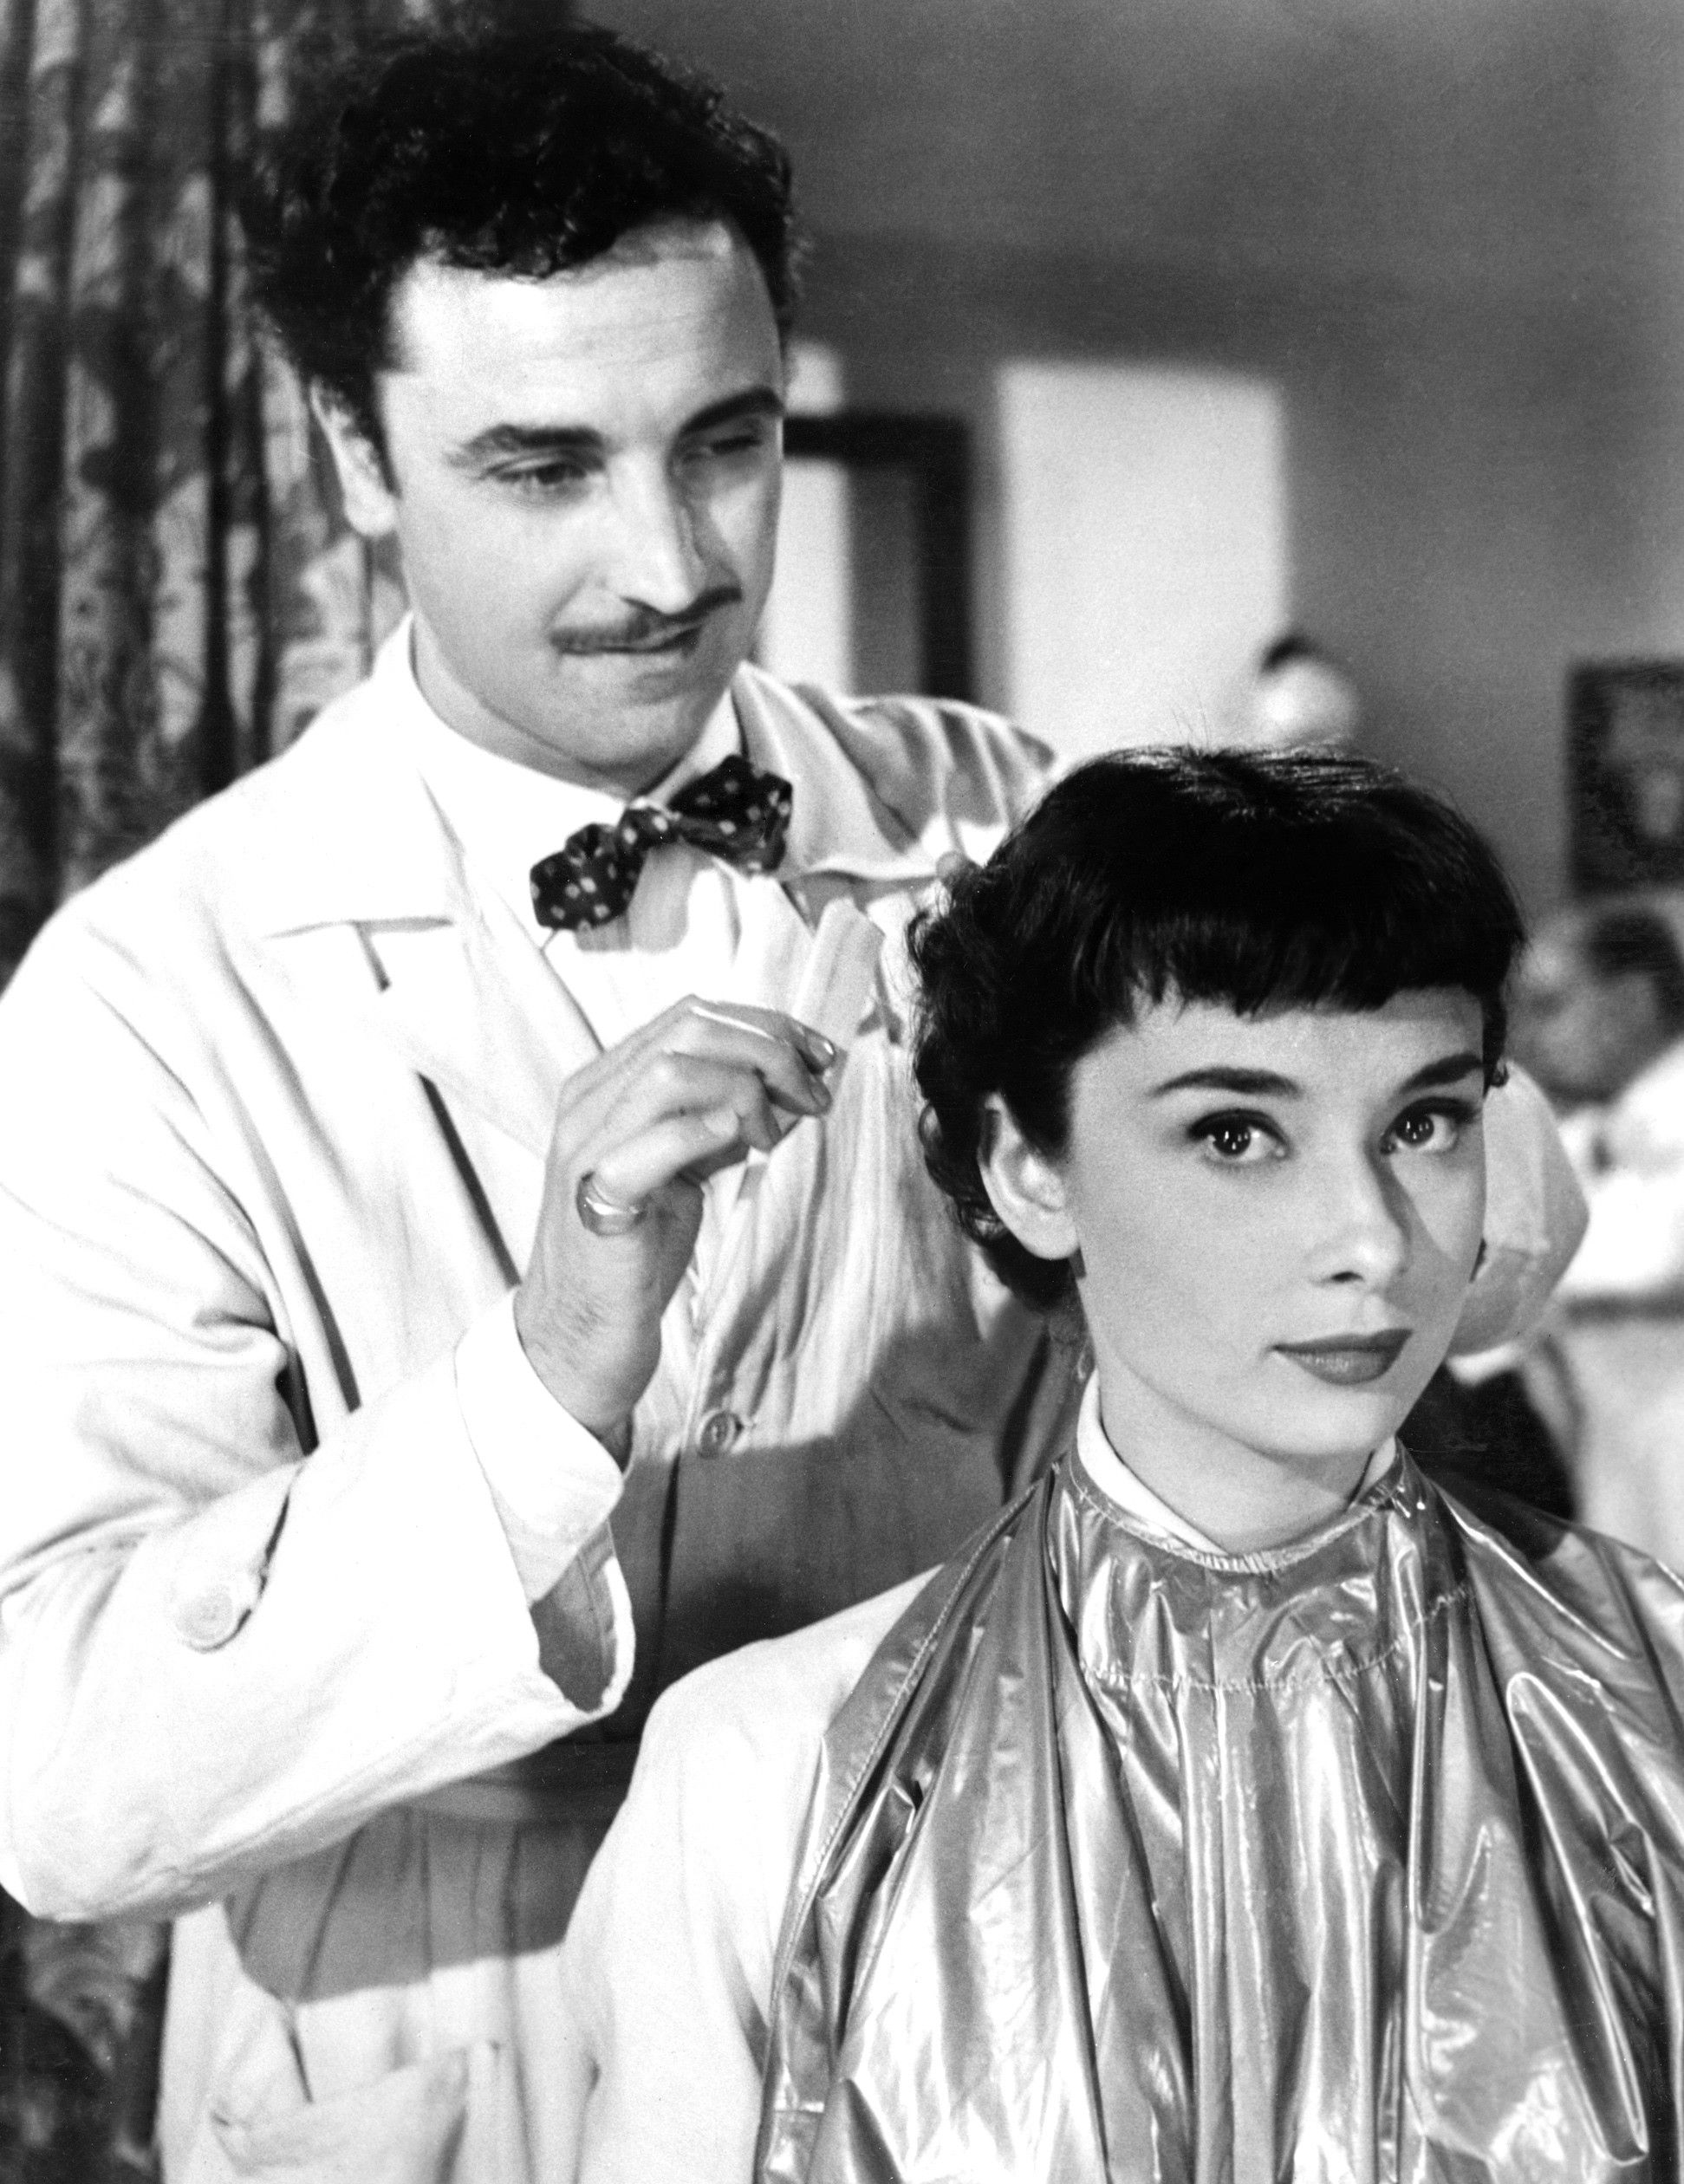 The Sexiest Movie Hairstyles | Roman holiday, Audrey hepburn and Roman